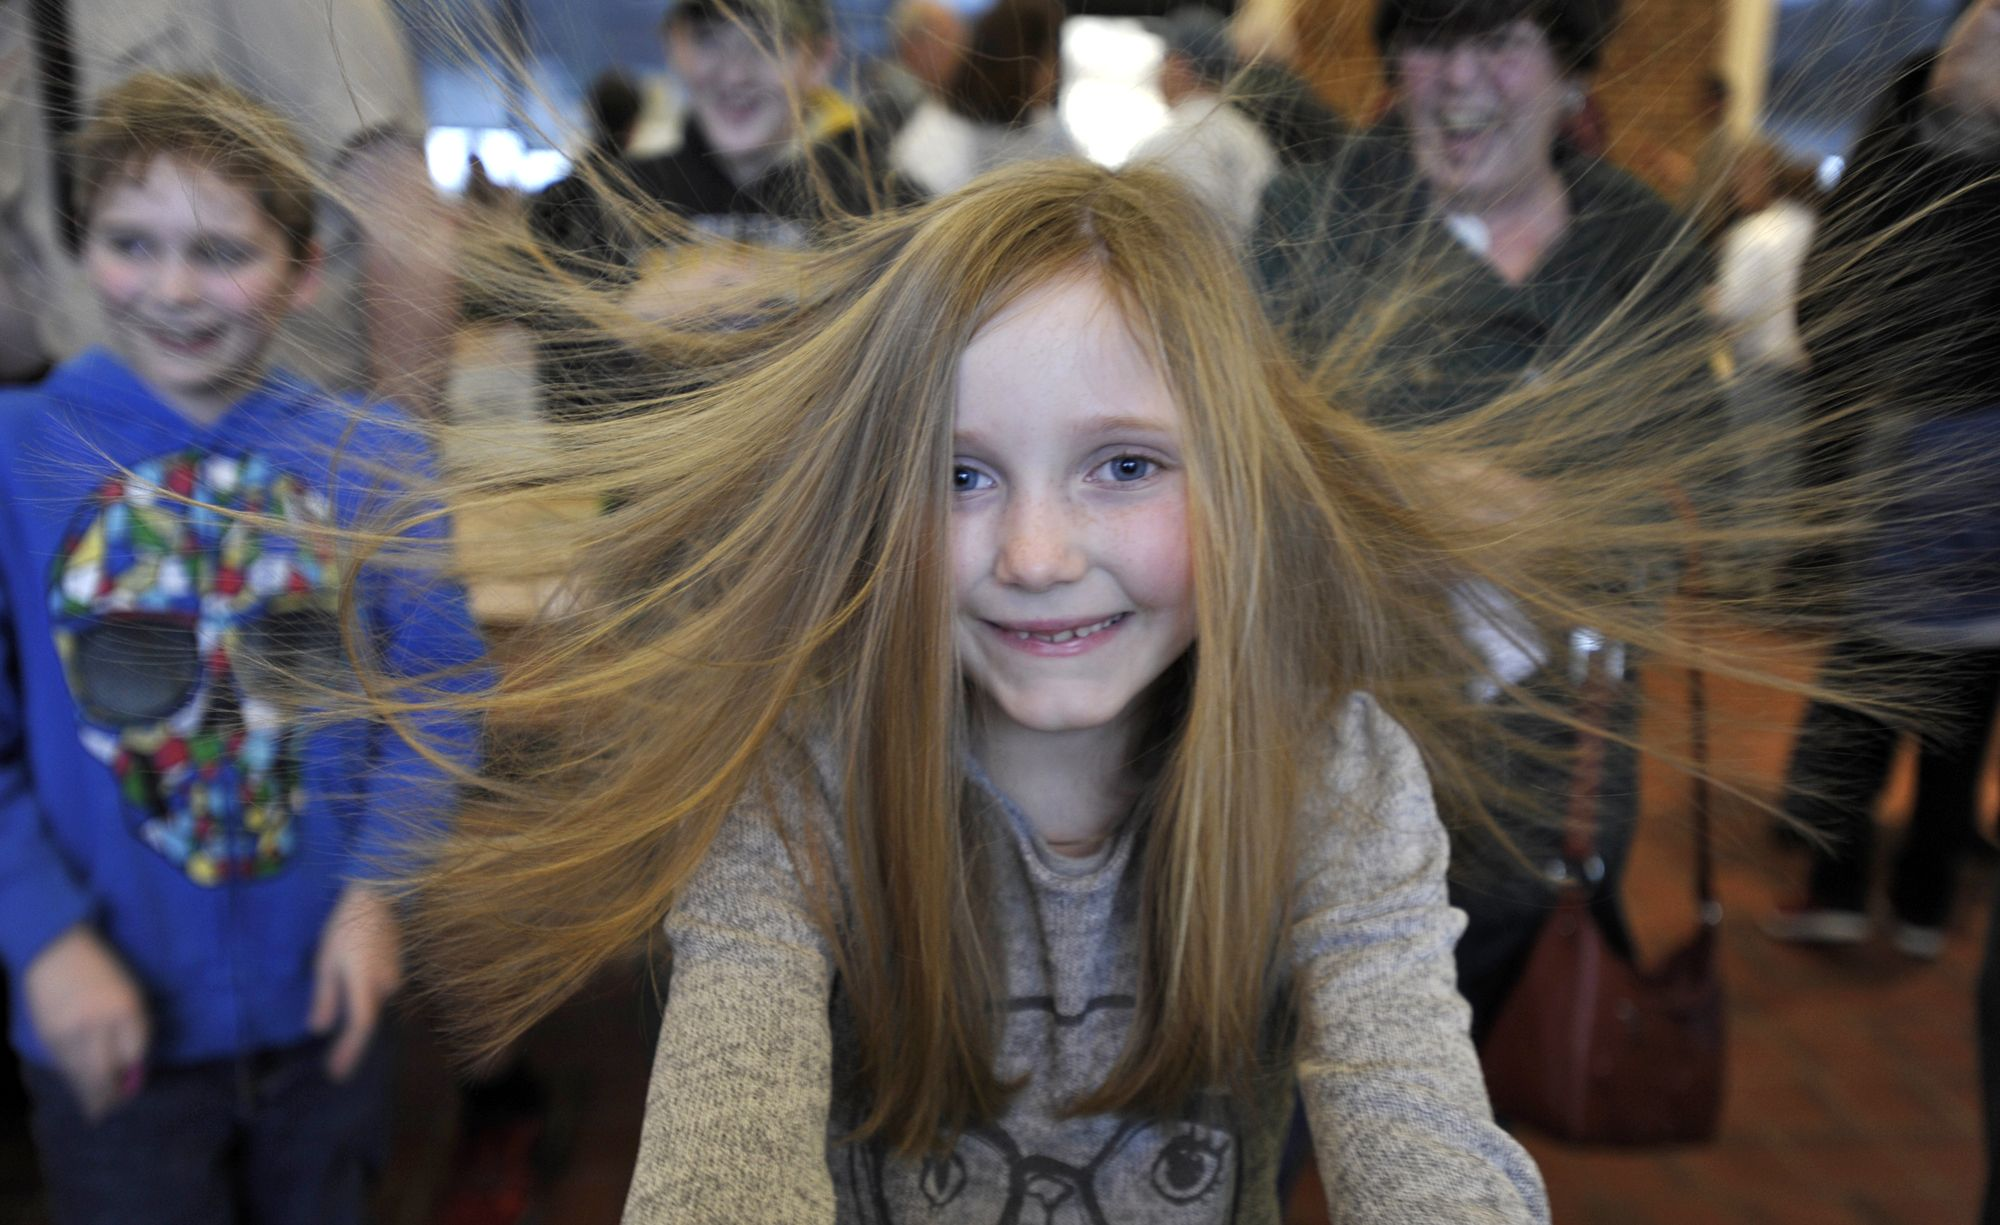 Brooke marshall 9 of plymouth has a hairraising